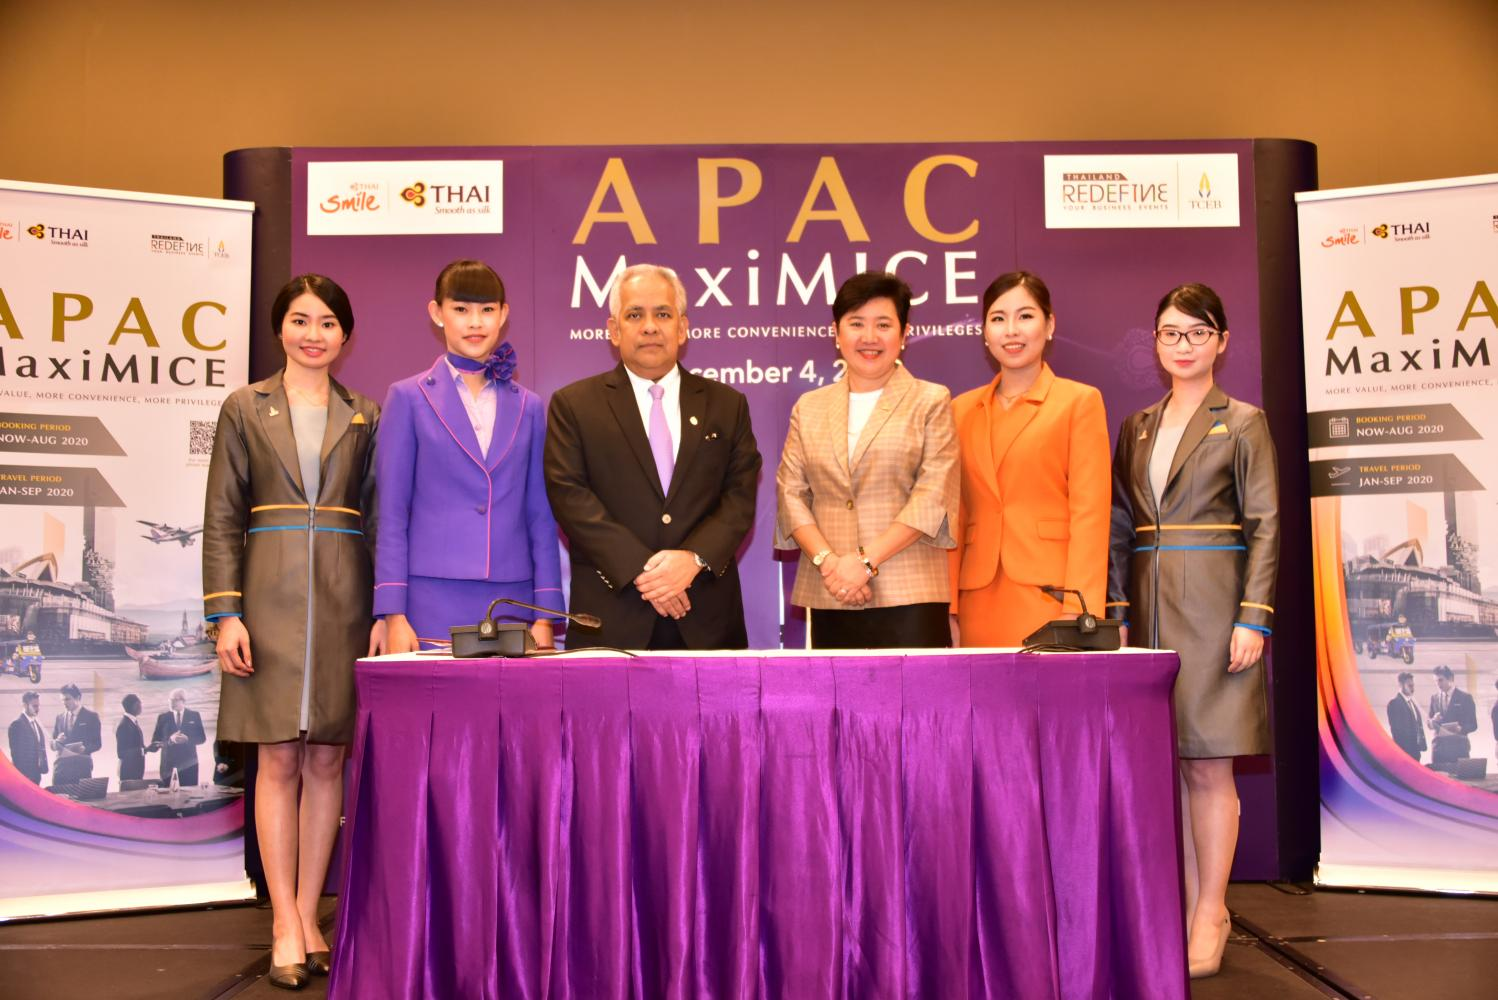 Mr Siriphong and Ms Vichaya (third right) launch the APAC MaxiMICE campaign to attract meetings and incentives travellers from Asia-Pacific.